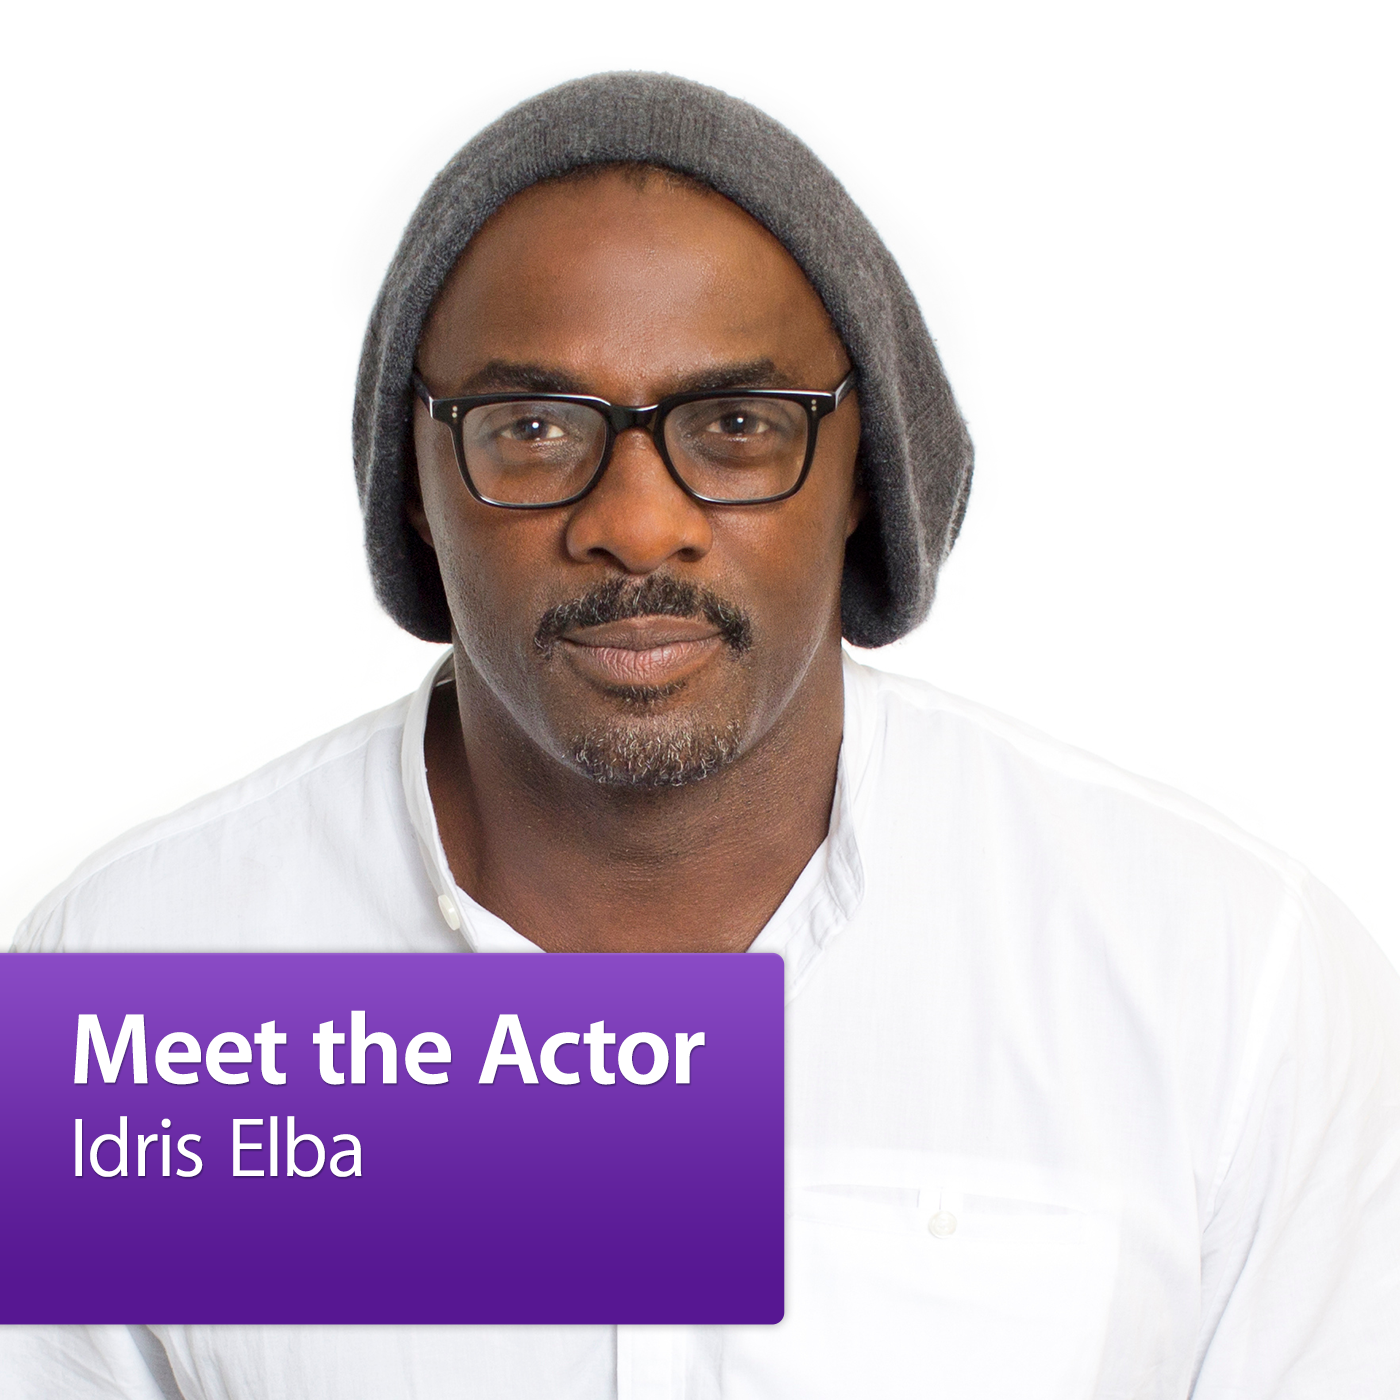 Idris Elba: Meet the Actor